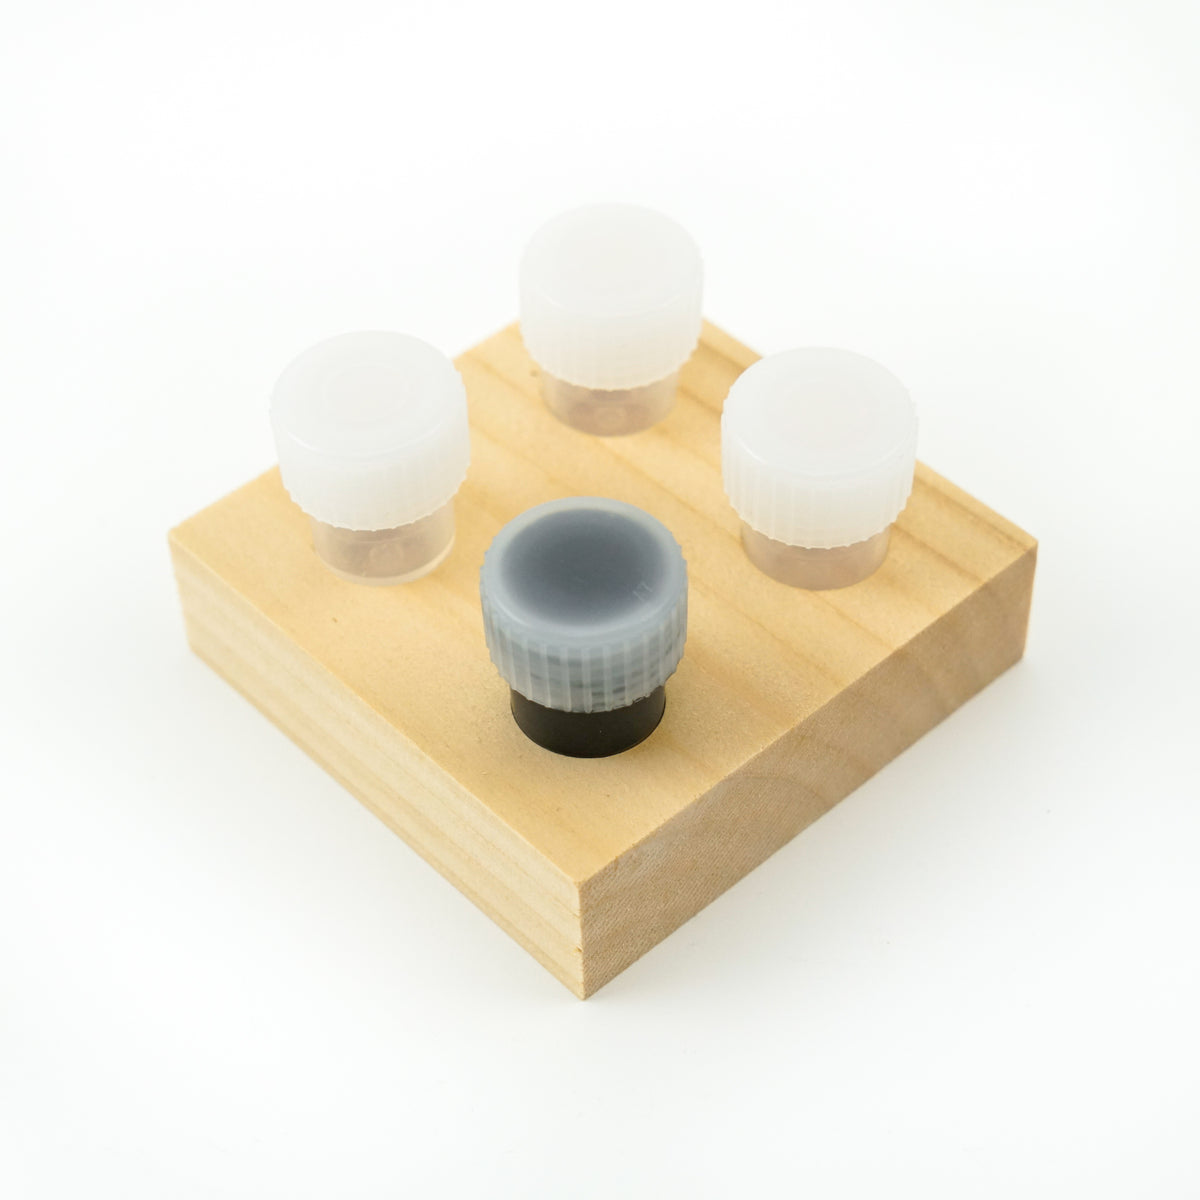 Dinky Dips 1pc Extra Ink Well for Wooden Ink Holder